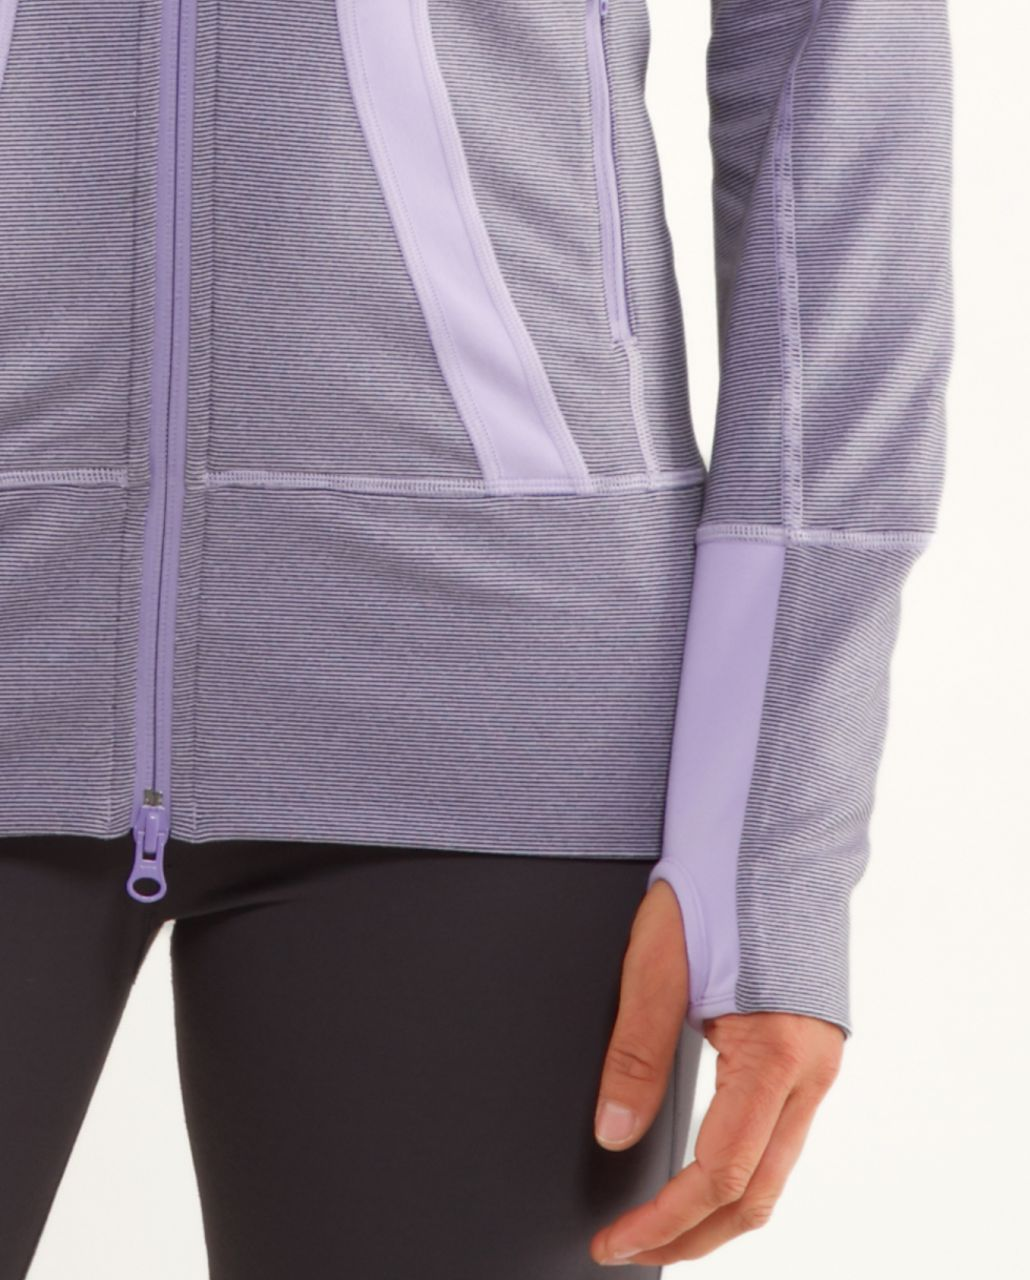 Lululemon Stride Jacket *Brushed - Lilac Heathered Coal Wee Stripe /  Lilac